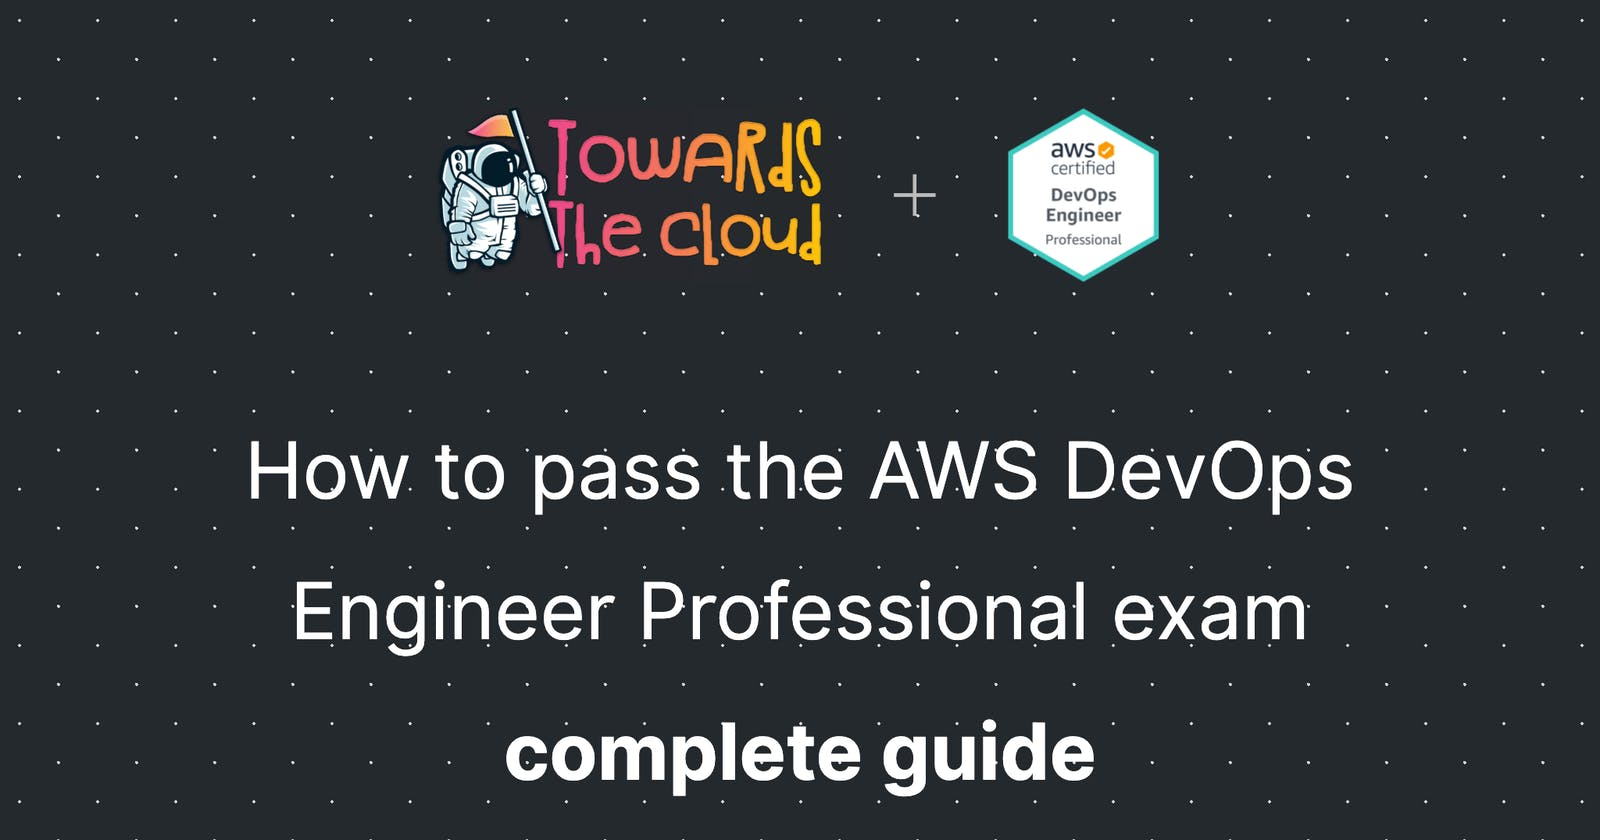 How to pass the AWS DevOps Engineer Professional exam - complete guide